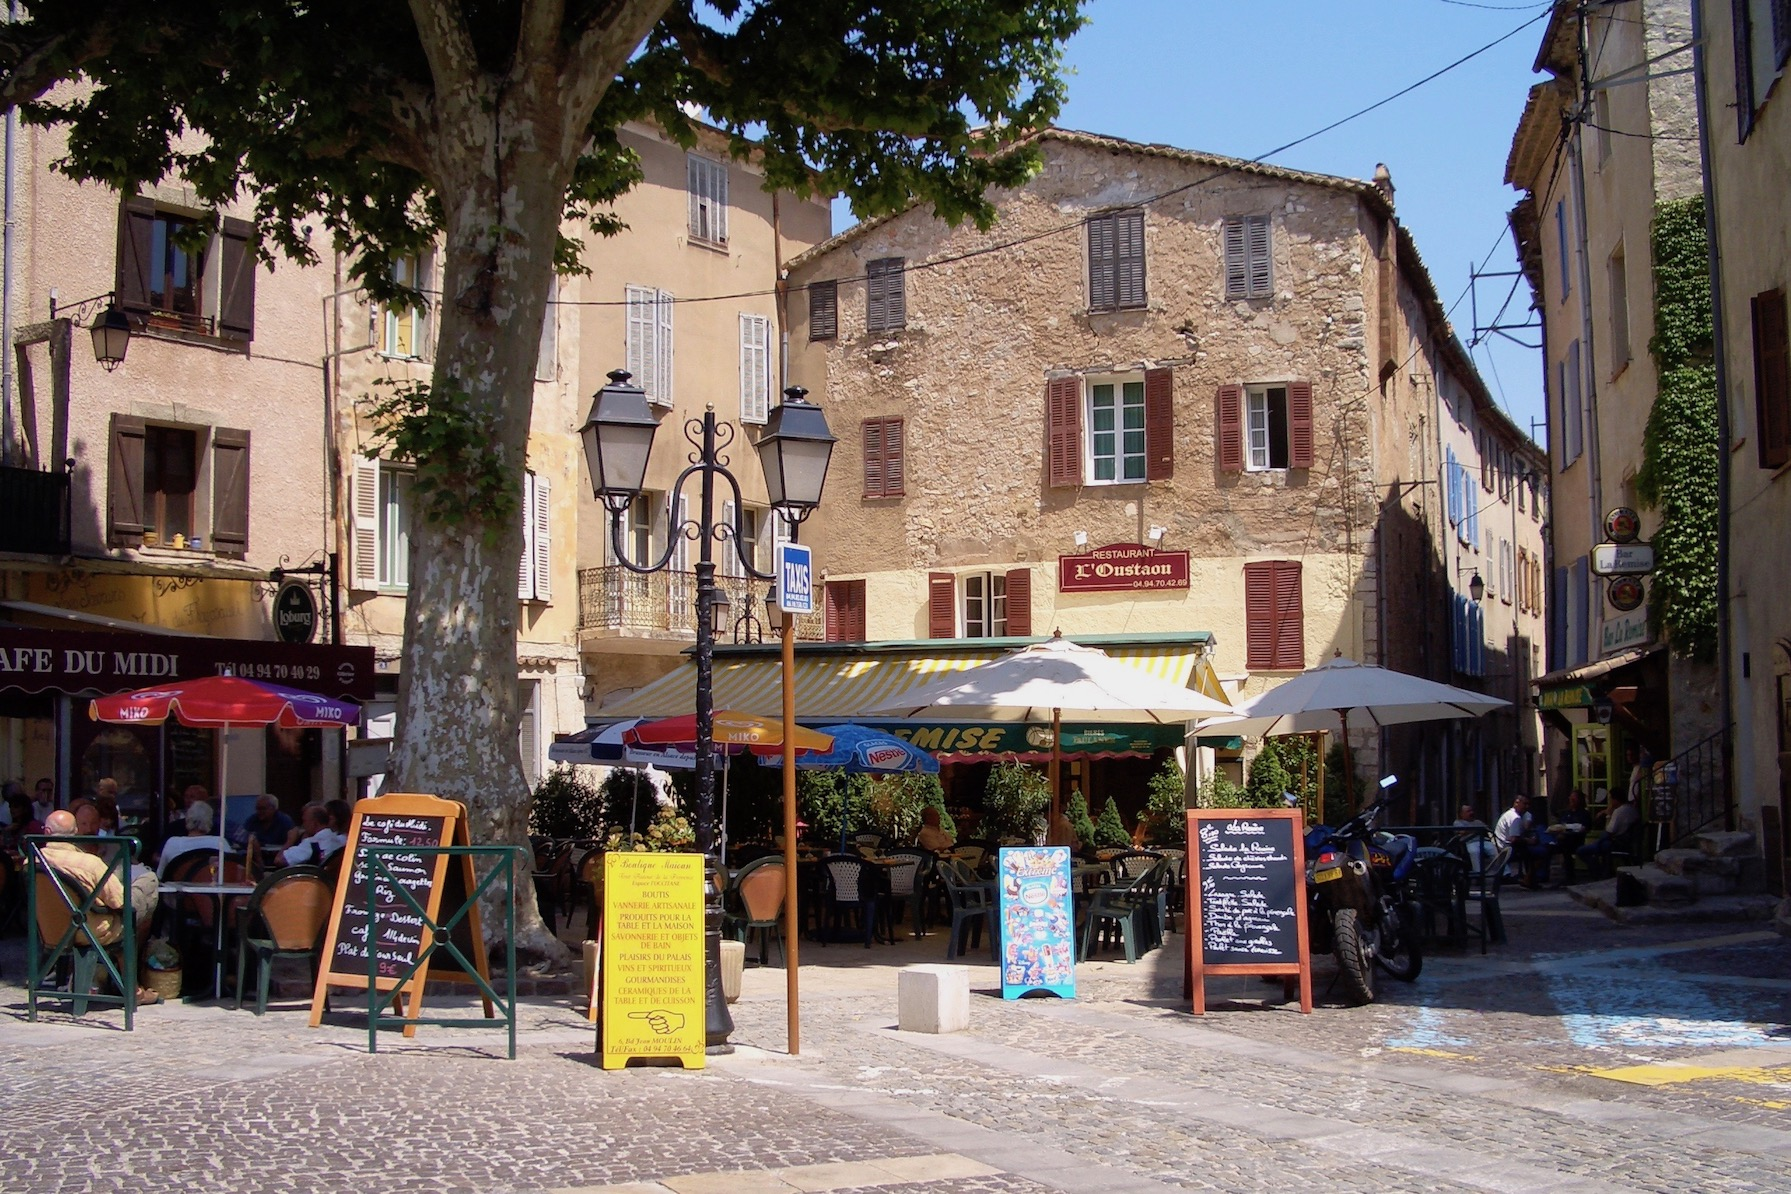 Several restaurants in the square in front of the house